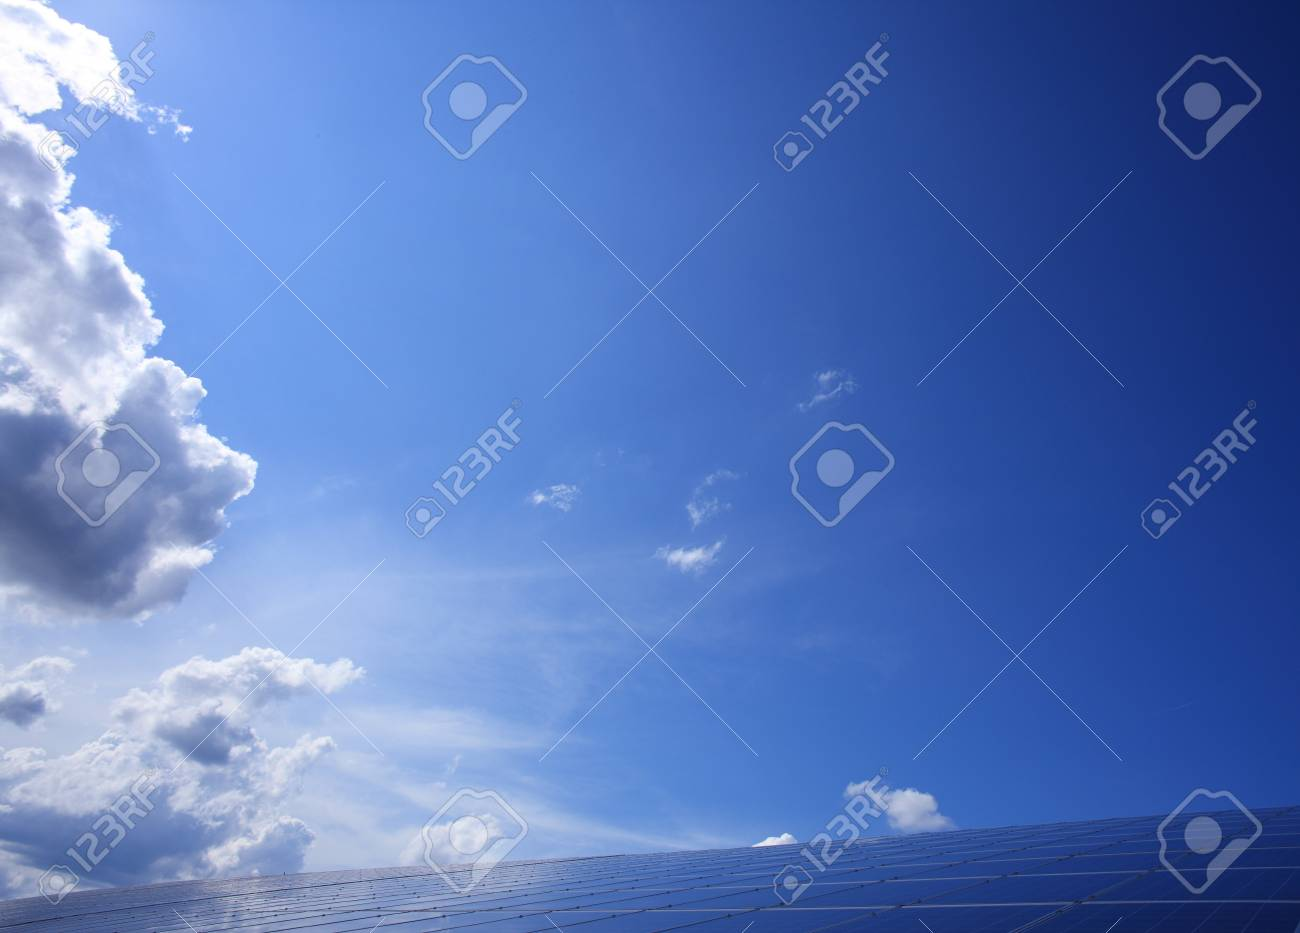 Blue sky and ocean background with some clouds. Stock Photo - 14273336